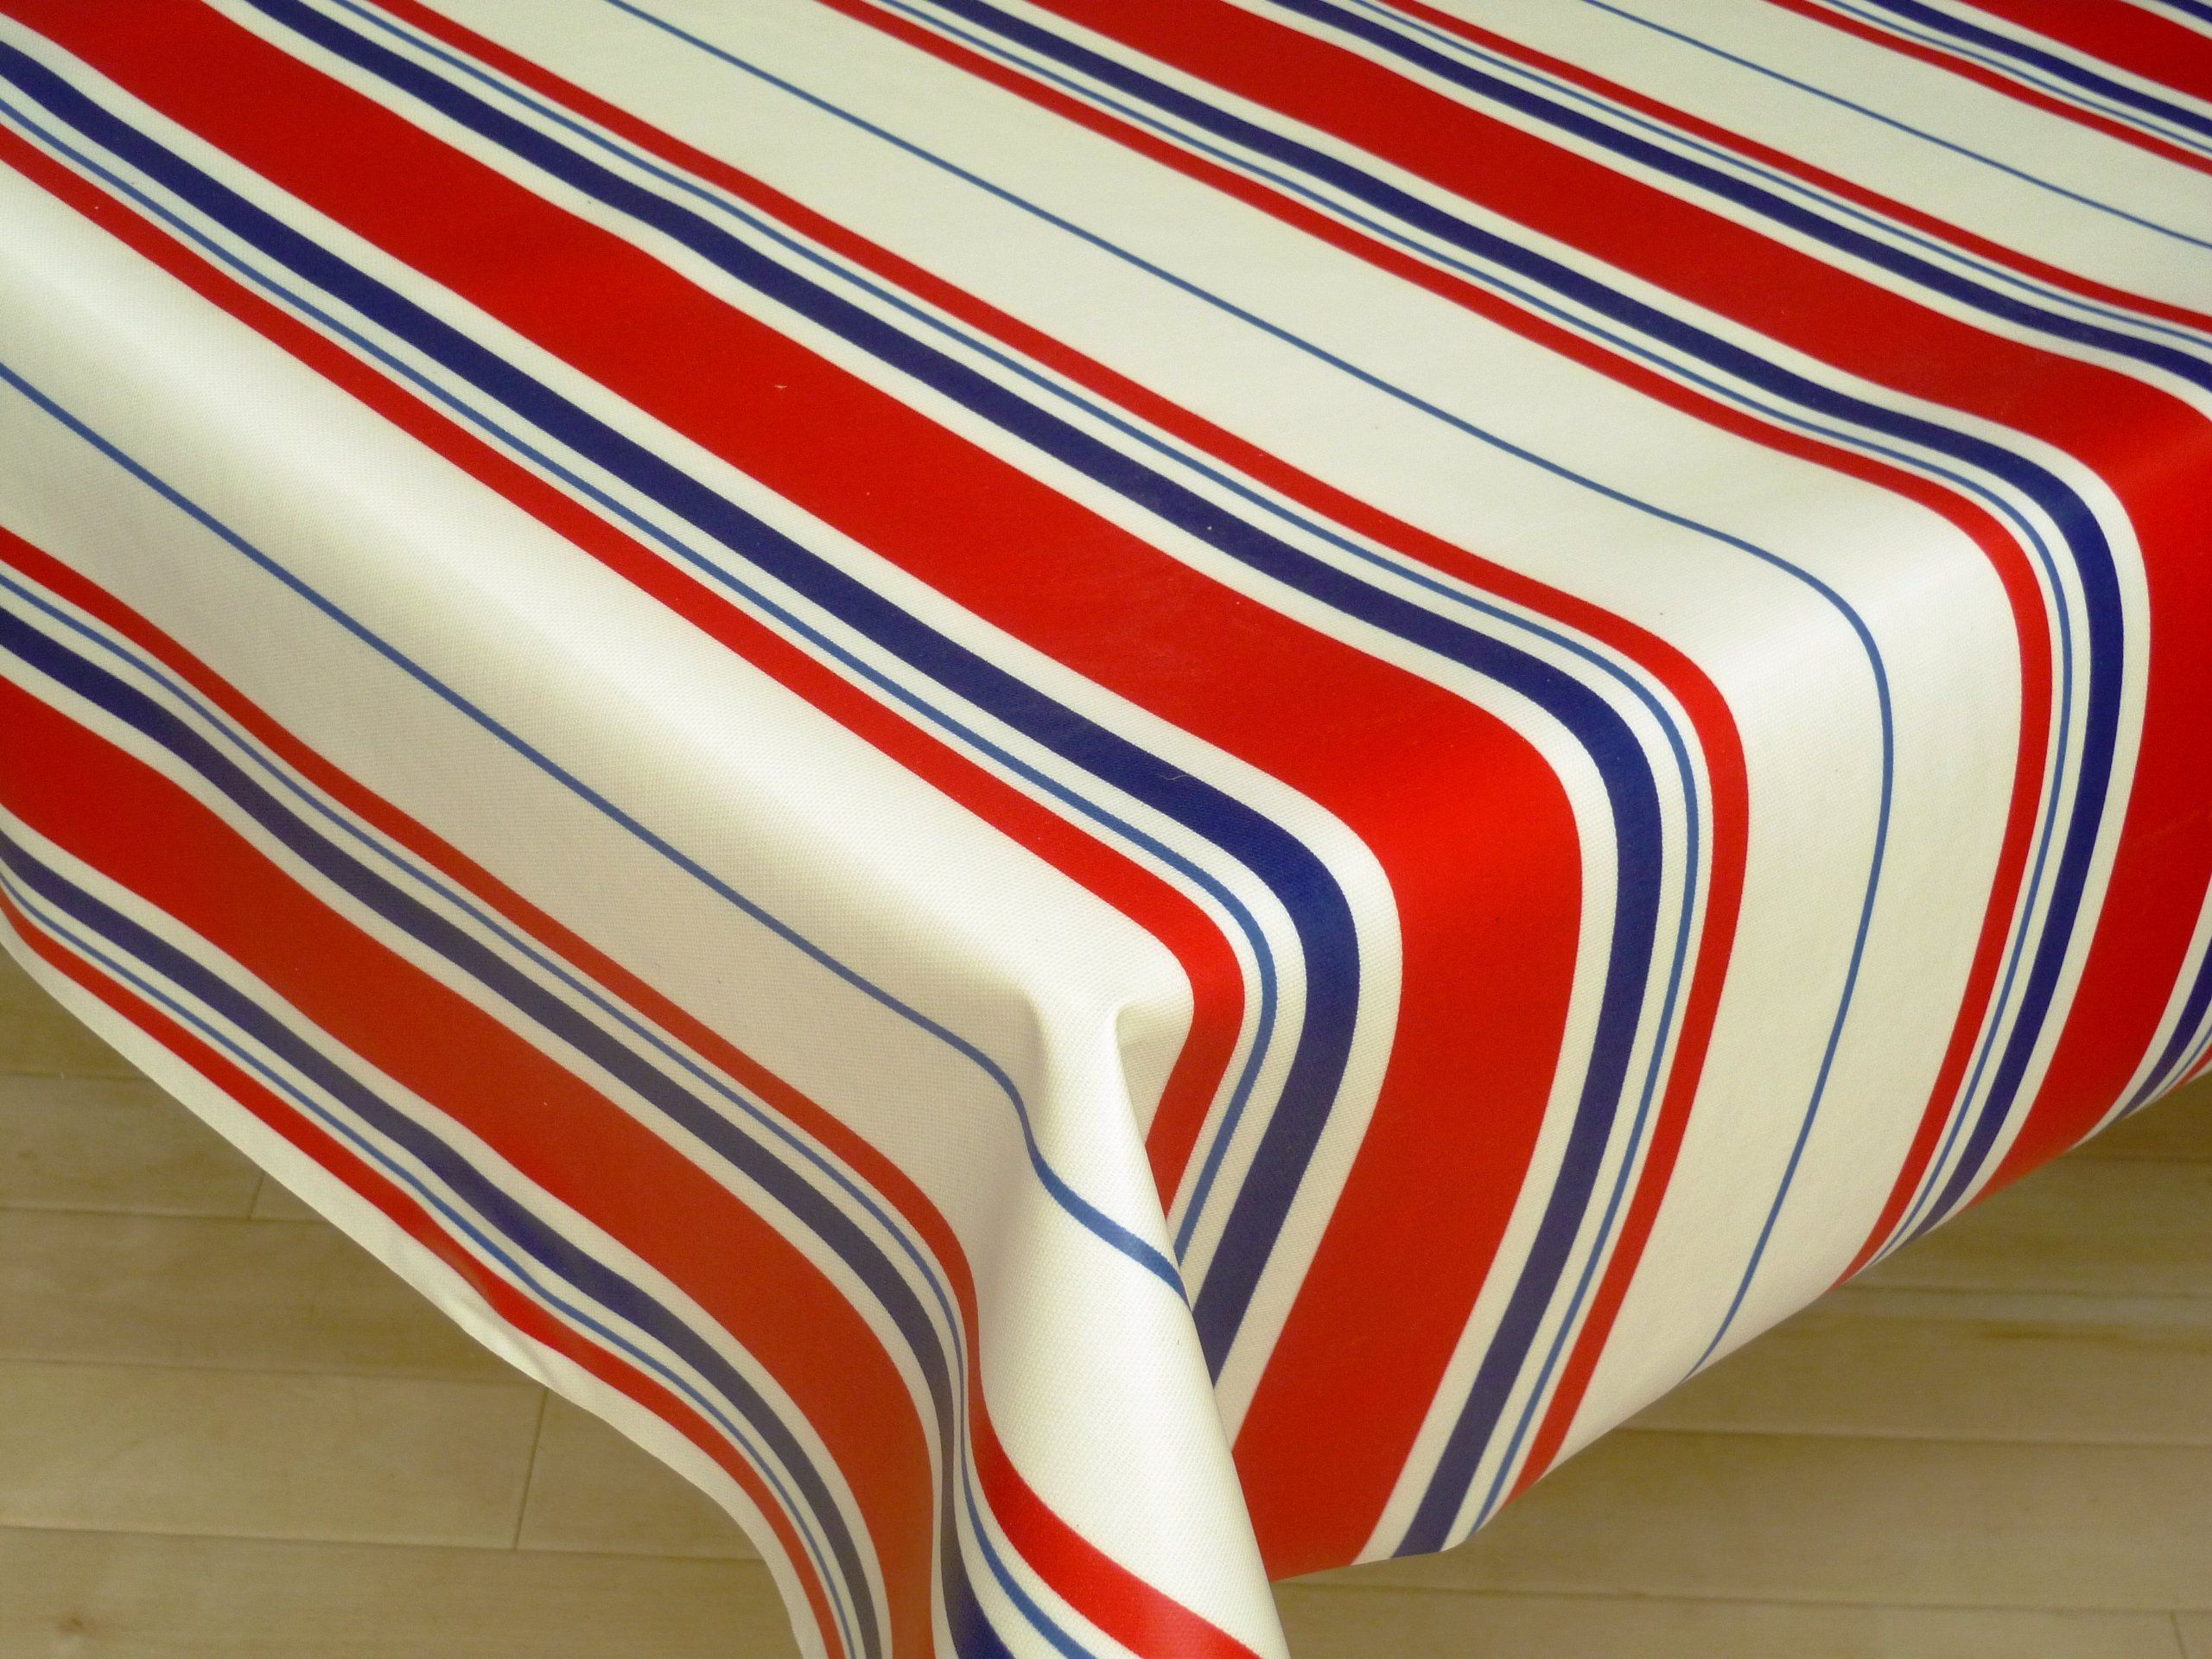 Oilcloth Tablecloth Red White And Blue Striped Design Wipe Clean 90 Quot X 52 Quot Table Cloth Oil Cloth Oilcloth Tablecloth